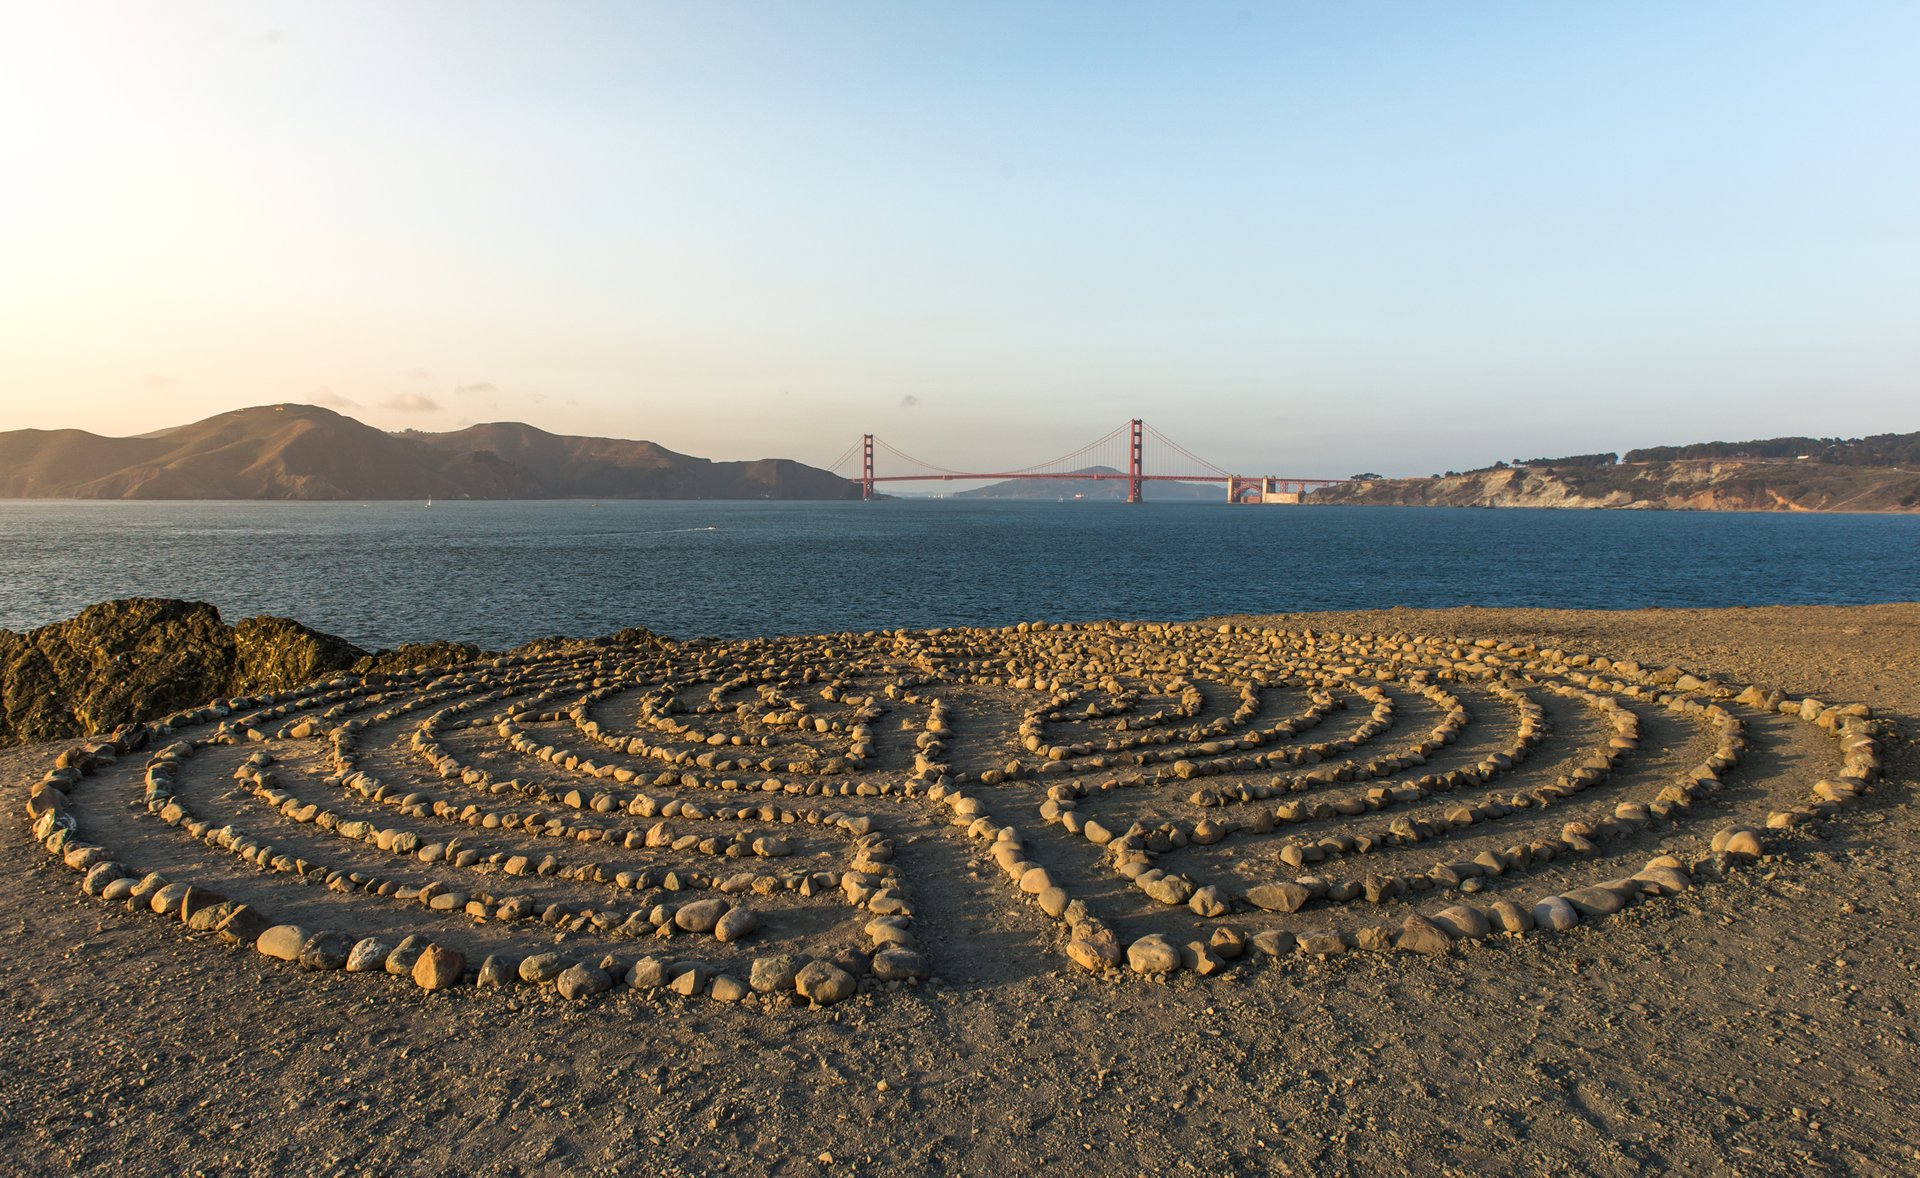 Land's End Labyrinth in San Francisco 2020 - Best Time